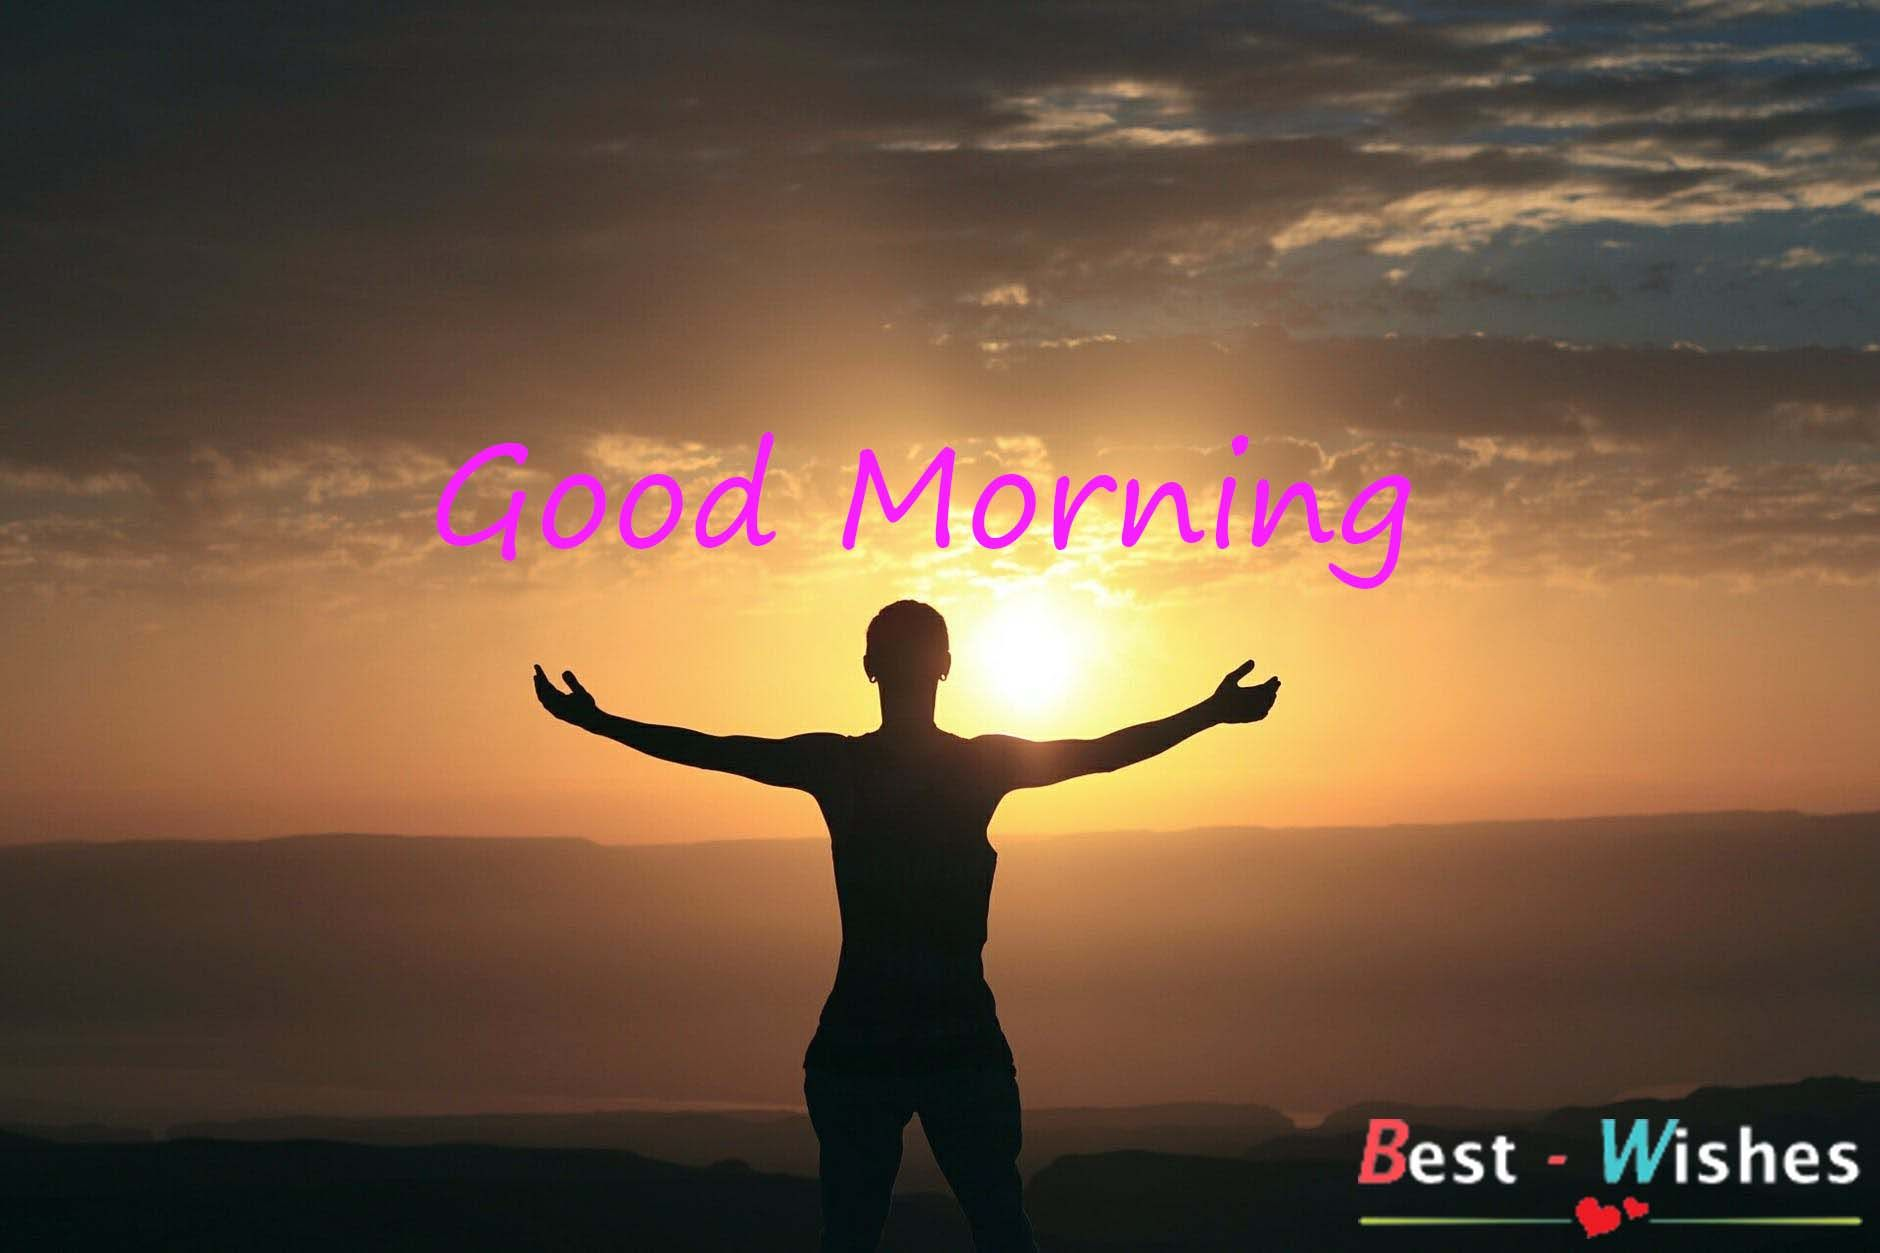 Good morning message sweet good morning greetings message text sweet good morning greetings message text sms will be a good start for a day find best cute good morning text messages and wishes m4hsunfo